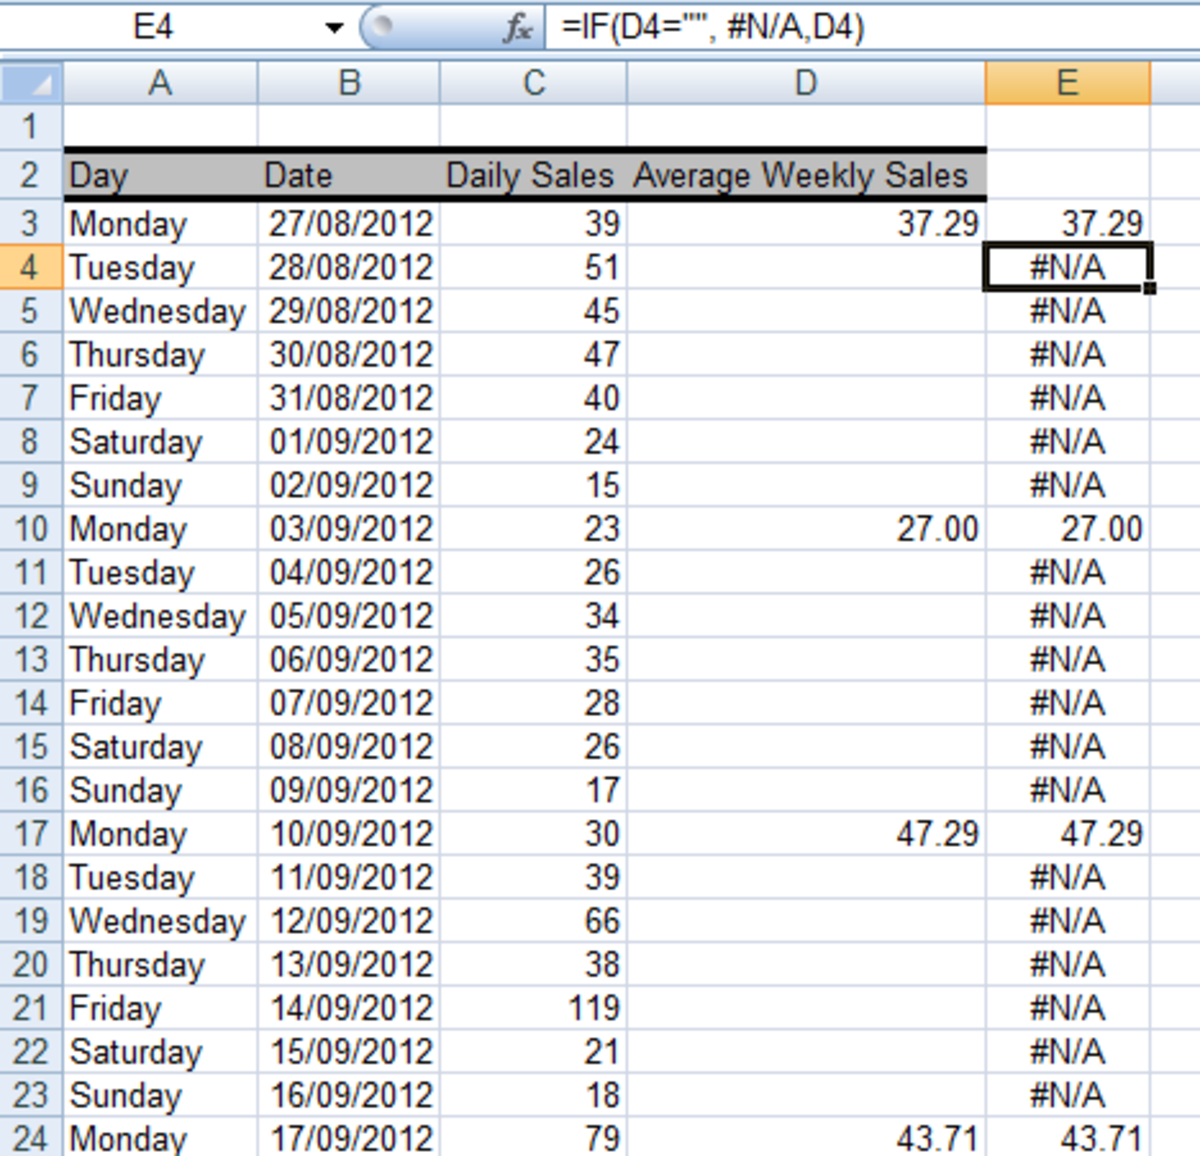 Ediblewildsus  Outstanding How To Get Excel  And  To Ignore Empty Cells In A Chart Or  With Handsome Using The If Function In A Formula To Convert Empty Cells To Na With Attractive How Do You Freeze Panes In Excel  Also Excel Lock Cells For Editing In Addition Excel Loan Calculator Template And Open Xlsx In Excel  As Well As Making A Line Chart In Excel Additionally Go Seek Excel From Turbofuturecom With Ediblewildsus  Handsome How To Get Excel  And  To Ignore Empty Cells In A Chart Or  With Attractive Using The If Function In A Formula To Convert Empty Cells To Na And Outstanding How Do You Freeze Panes In Excel  Also Excel Lock Cells For Editing In Addition Excel Loan Calculator Template From Turbofuturecom